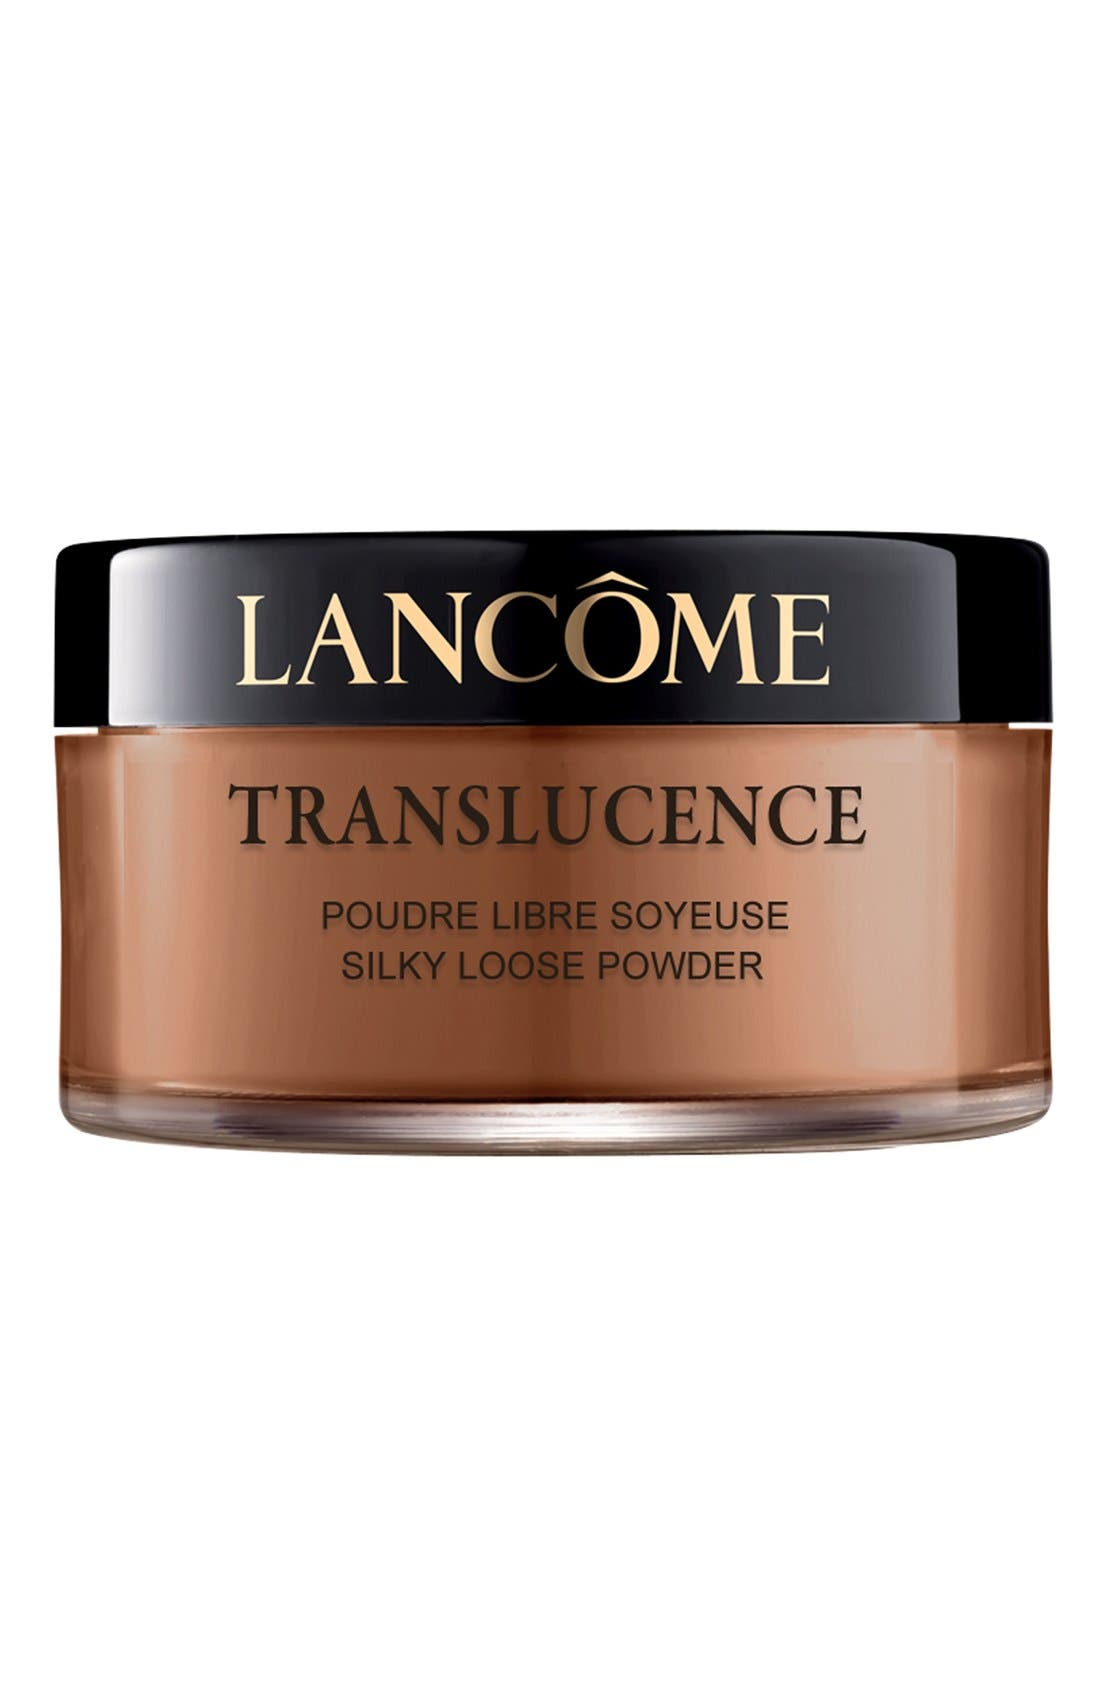 Translucence Silky Loose Powder,                         Main,                         color, 500